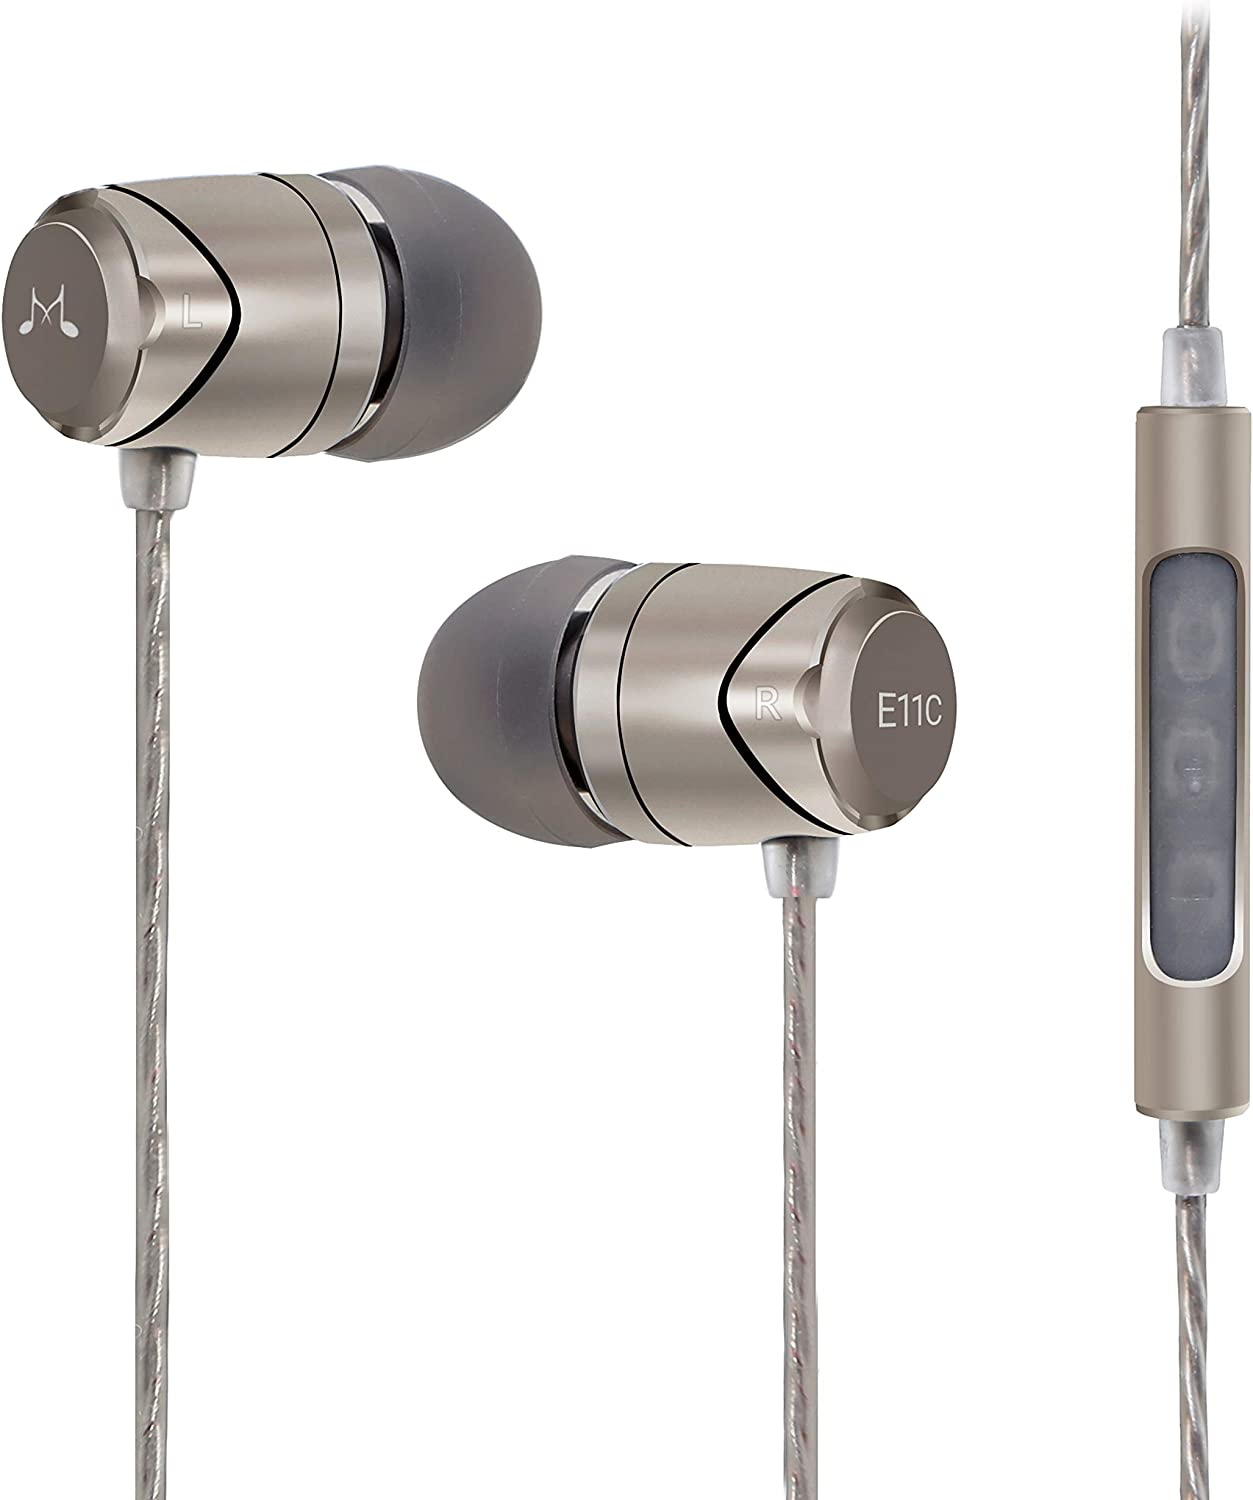 SoundMAGIC E11C Earphones Wired Noise Isolating in-Ear Earbuds Powerful Bass HiFi Stereo Sport Headphones with Microphone (Gunmetal)